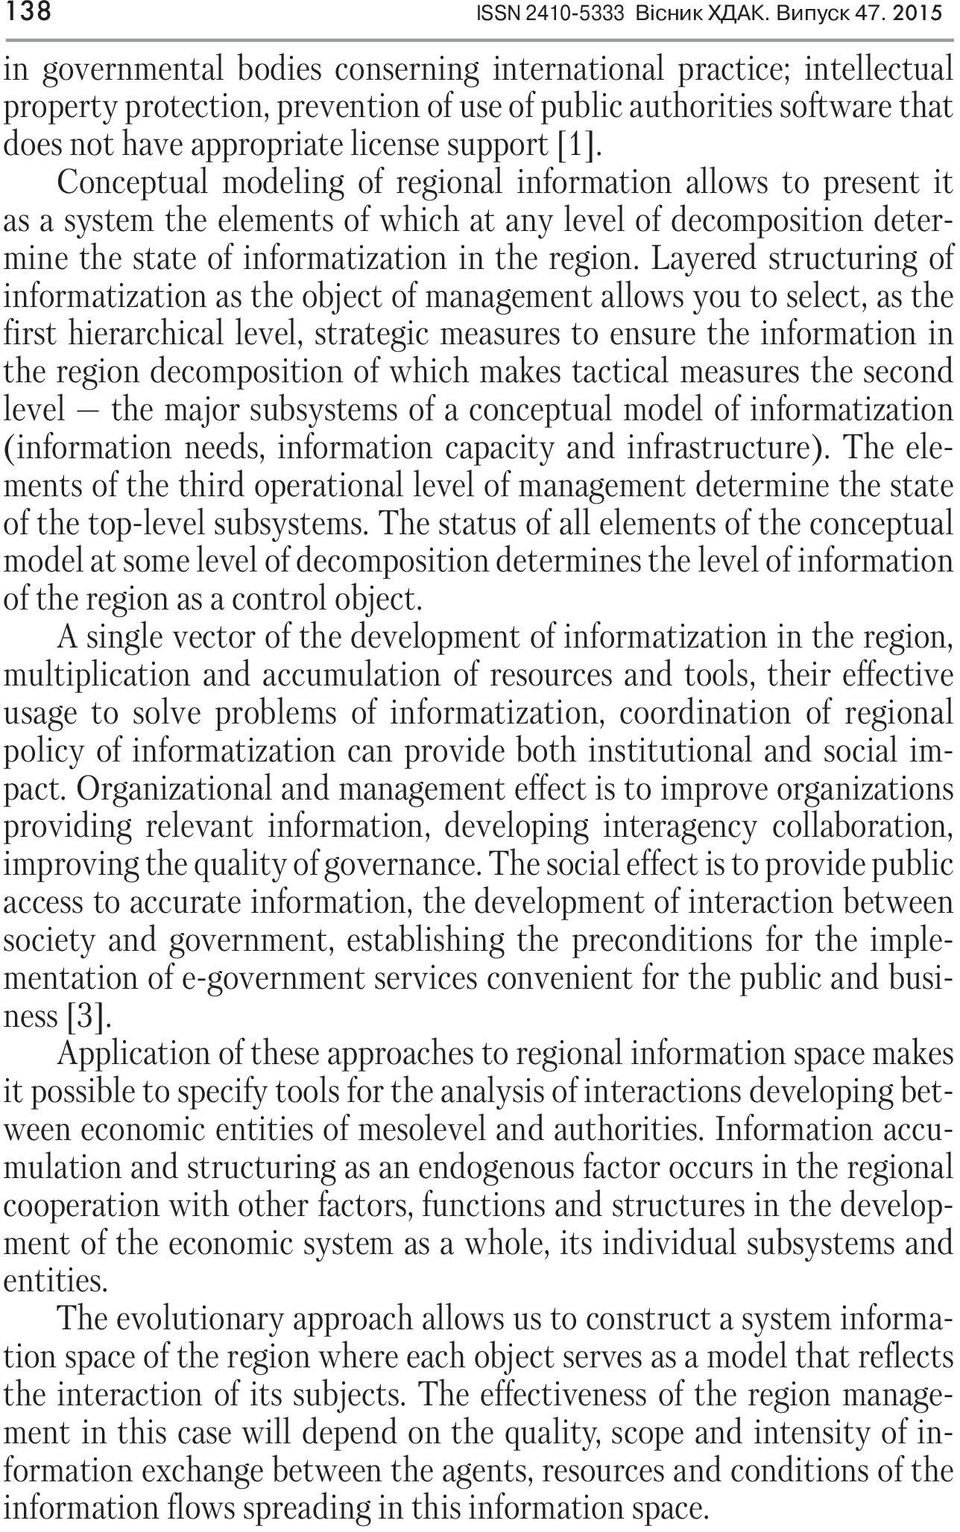 Conceptual modeling of regional information allows to present it as a system the elements of which at any level of decomposition determine the state of informatization in the region.